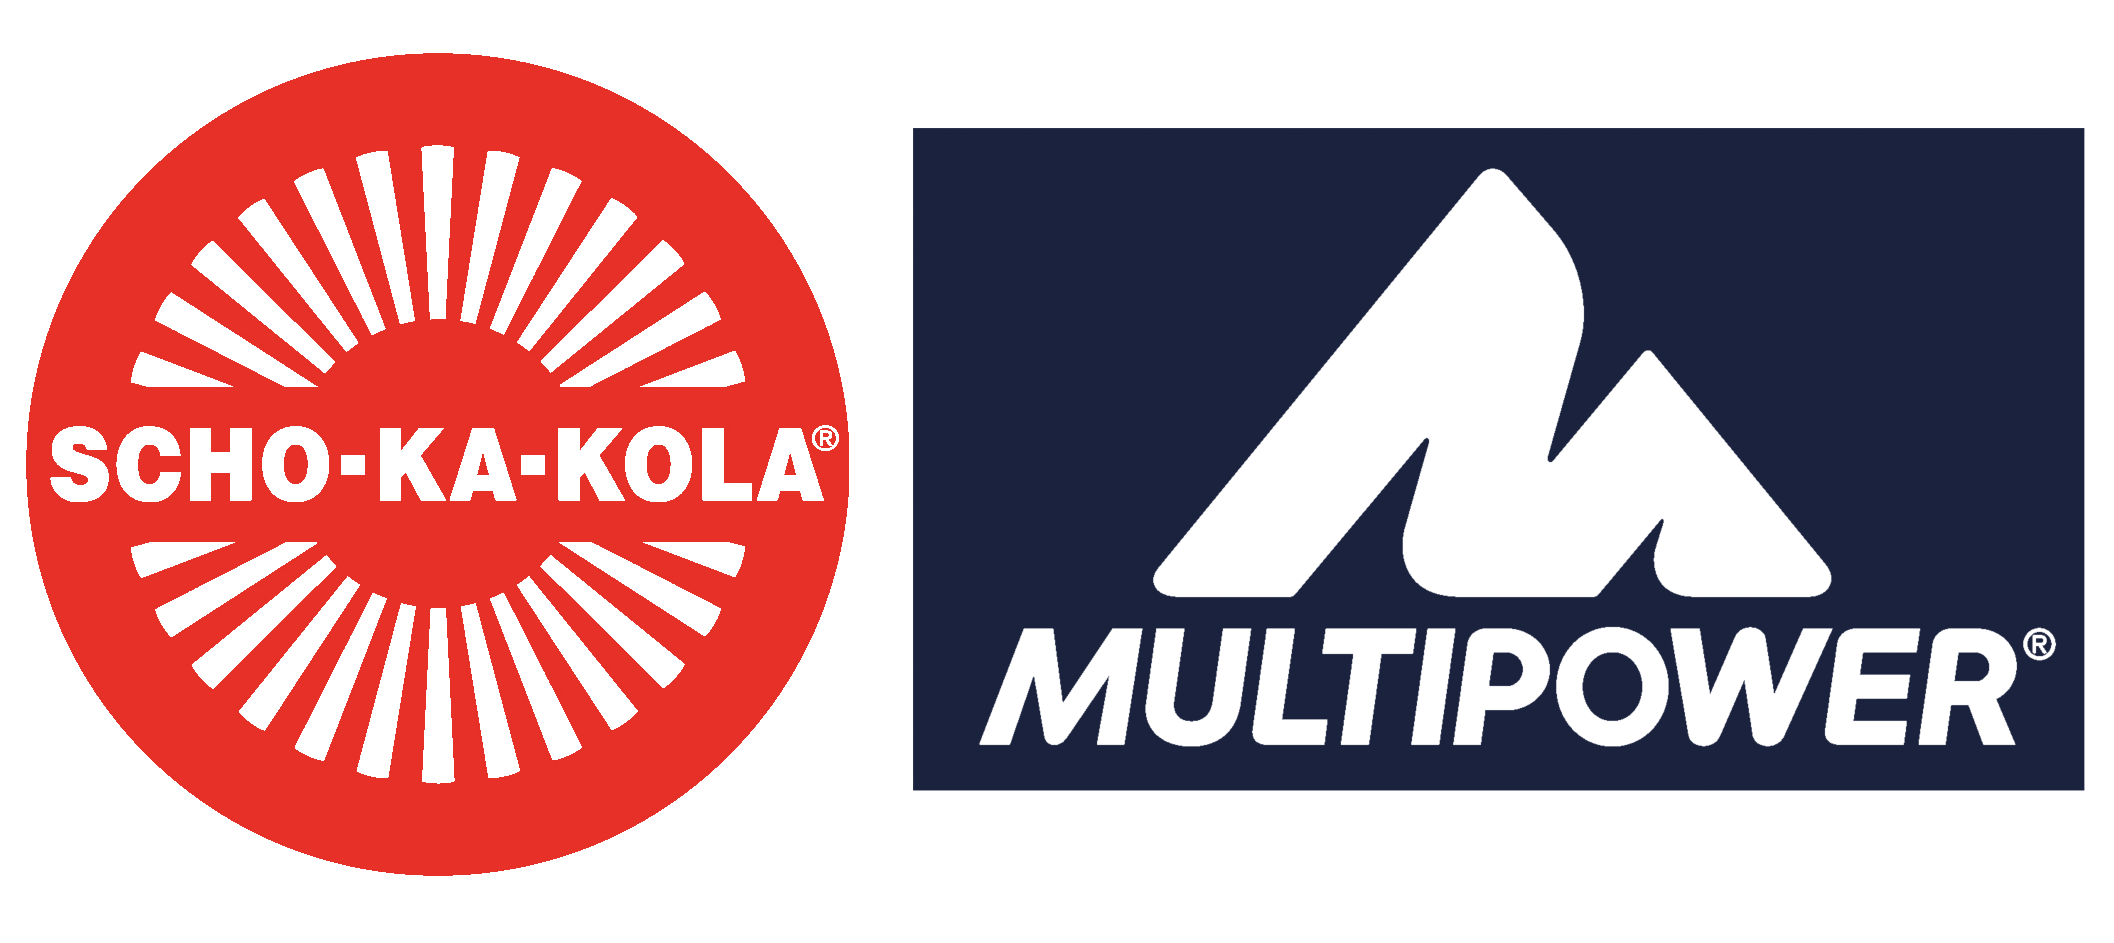 Multipower_Schokakola.png